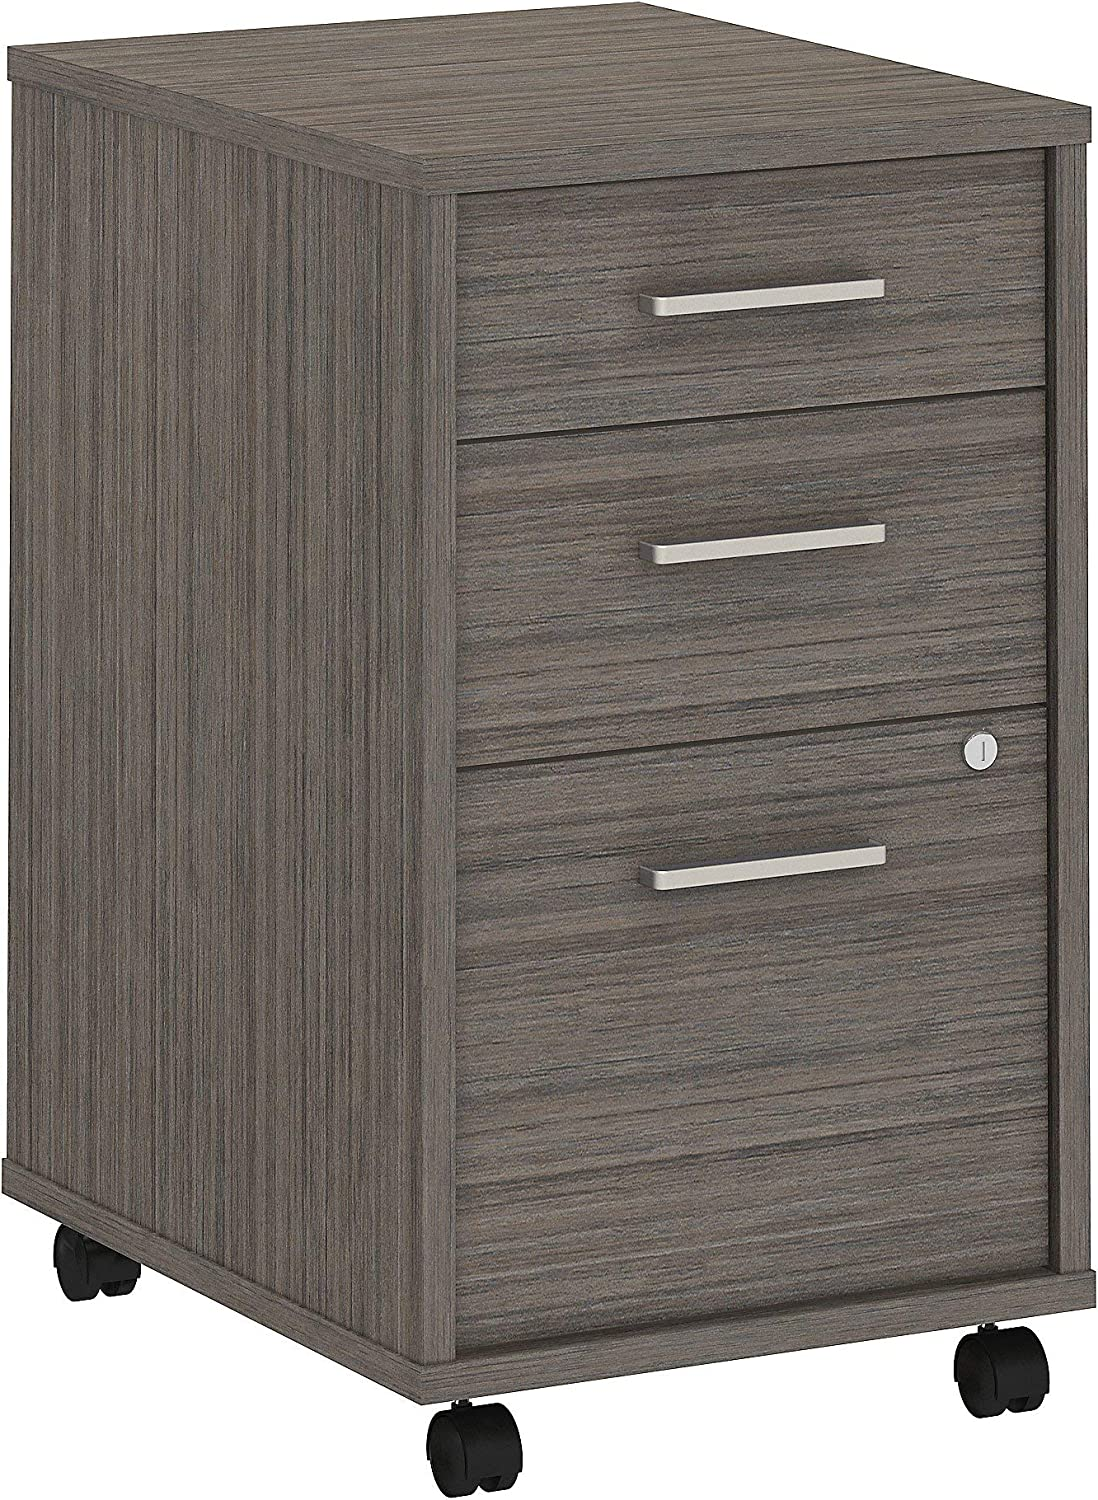 Bush Business Furniture Office by kathy ireland Method 3 Drawer Mobile File Cabinet - Assembled, Cocoa